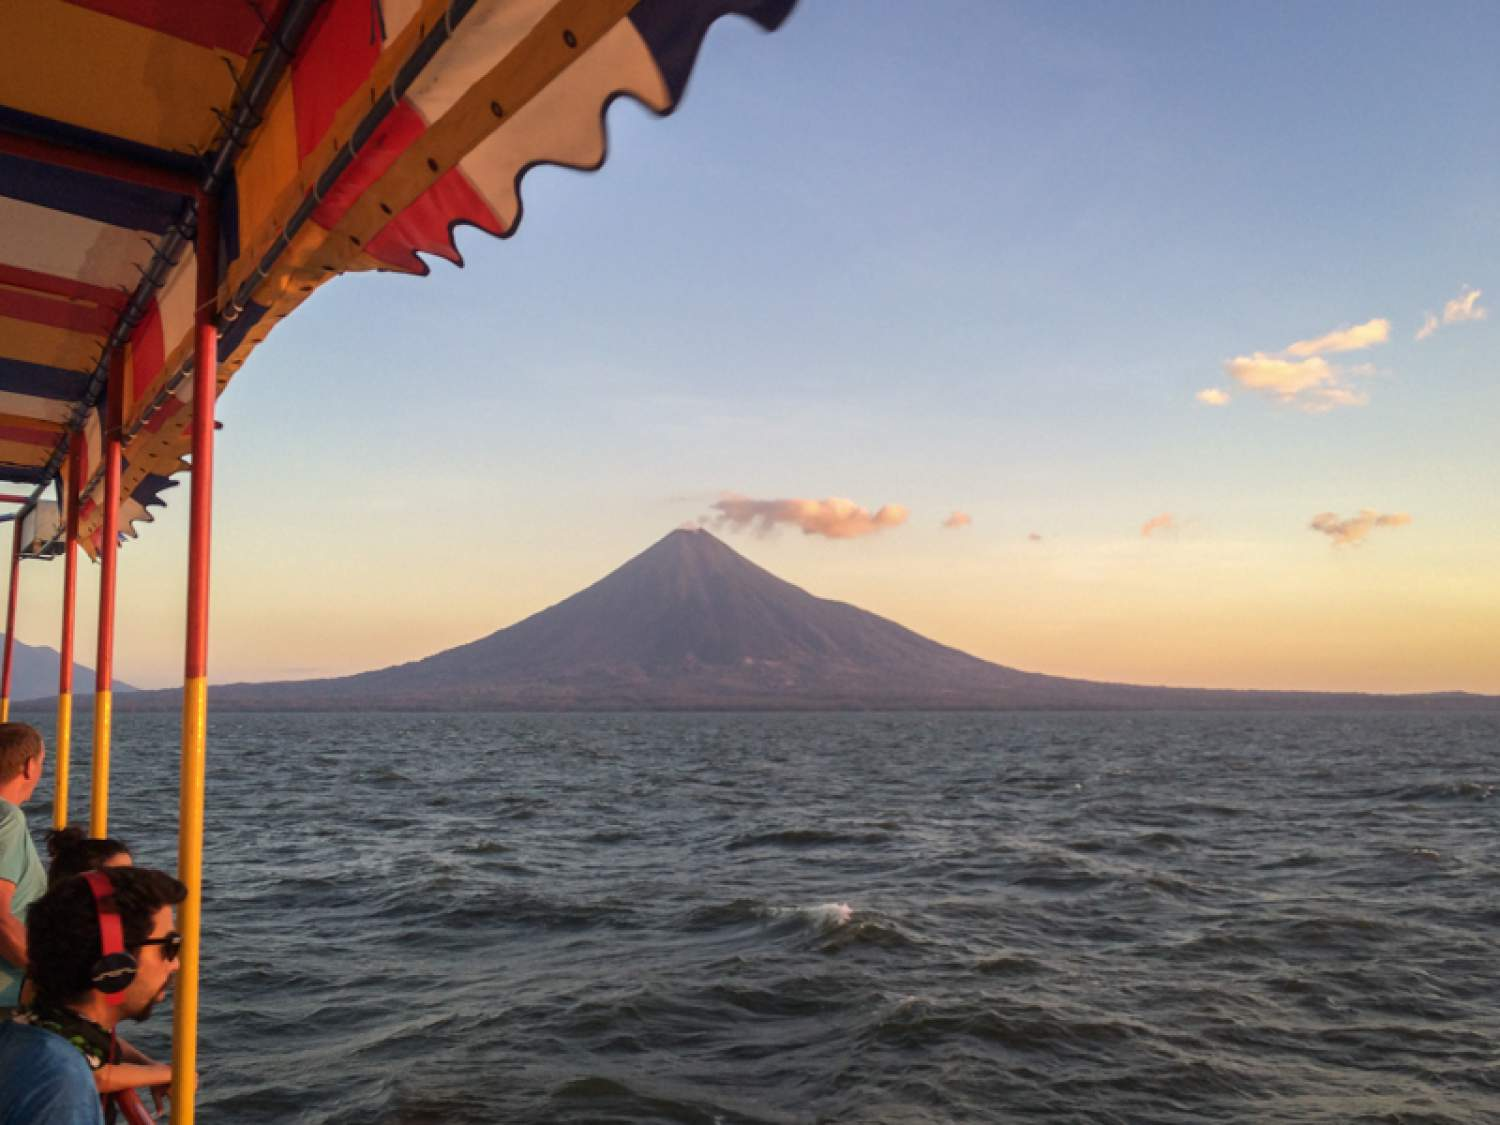 View from a boat of the Concepción volcano in Ometepe, Nicaragua